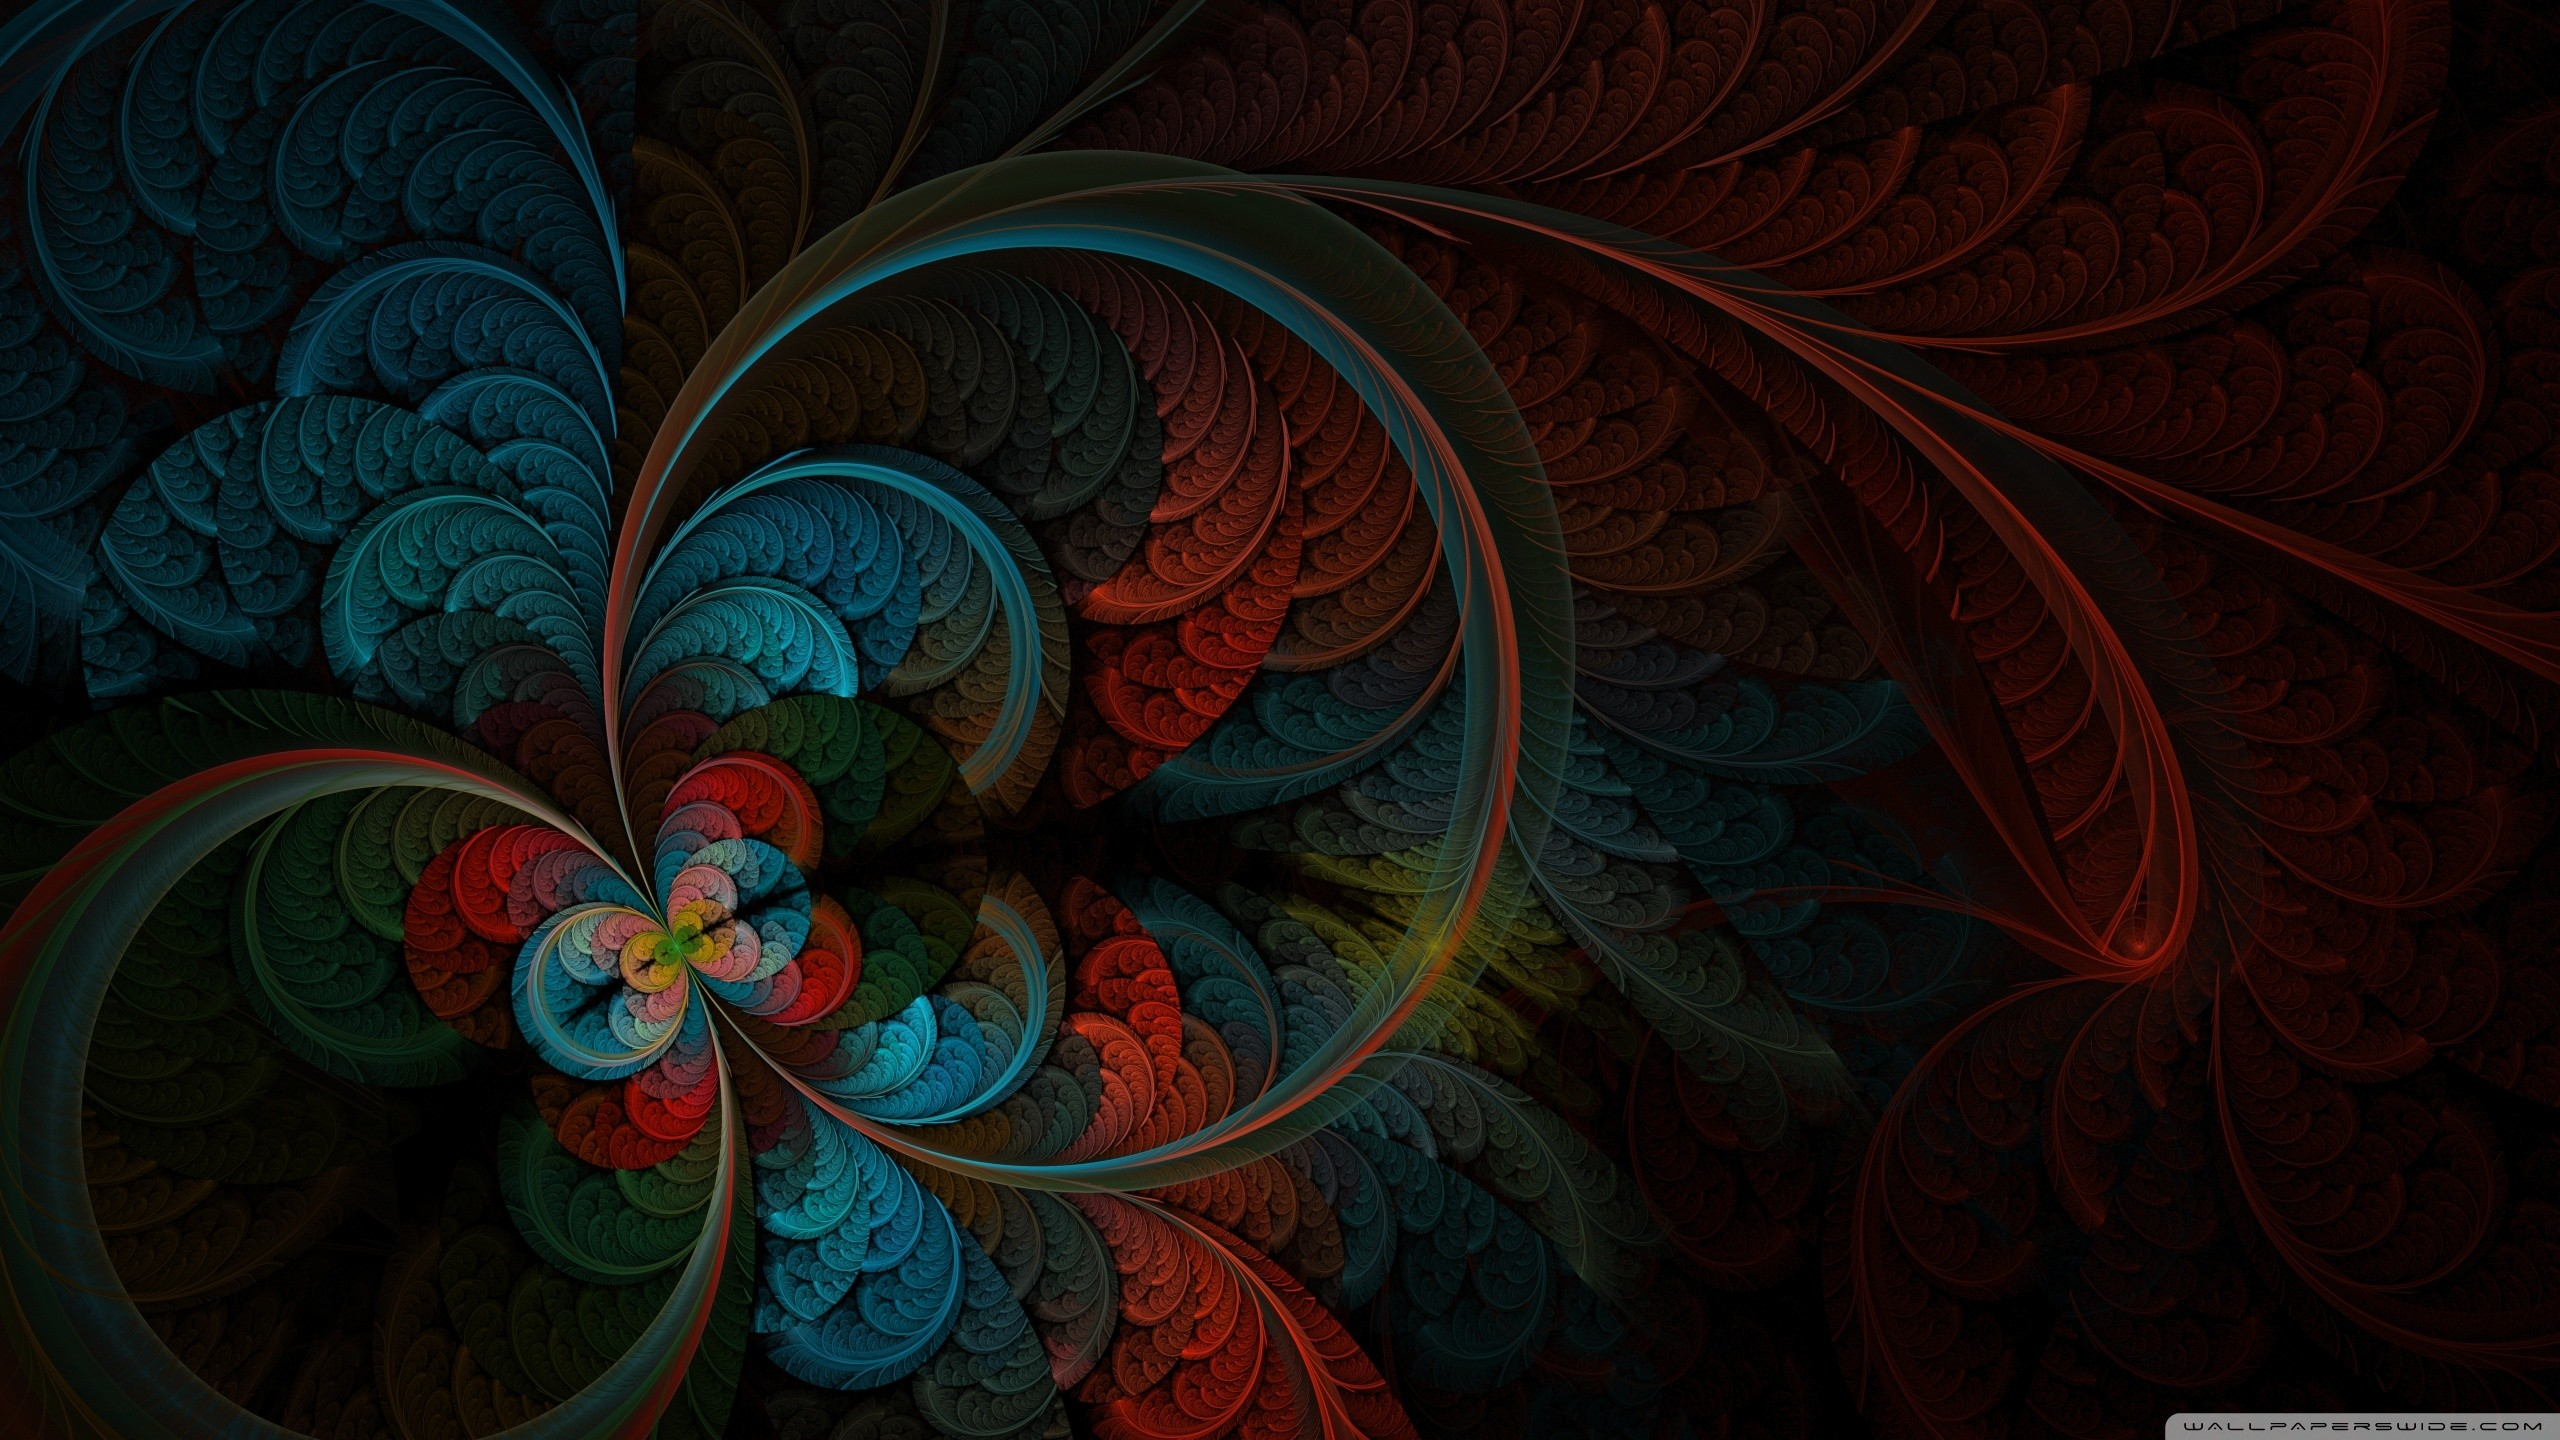 2560x1440 Fractals Wallpaper At Fractal Wallpapers